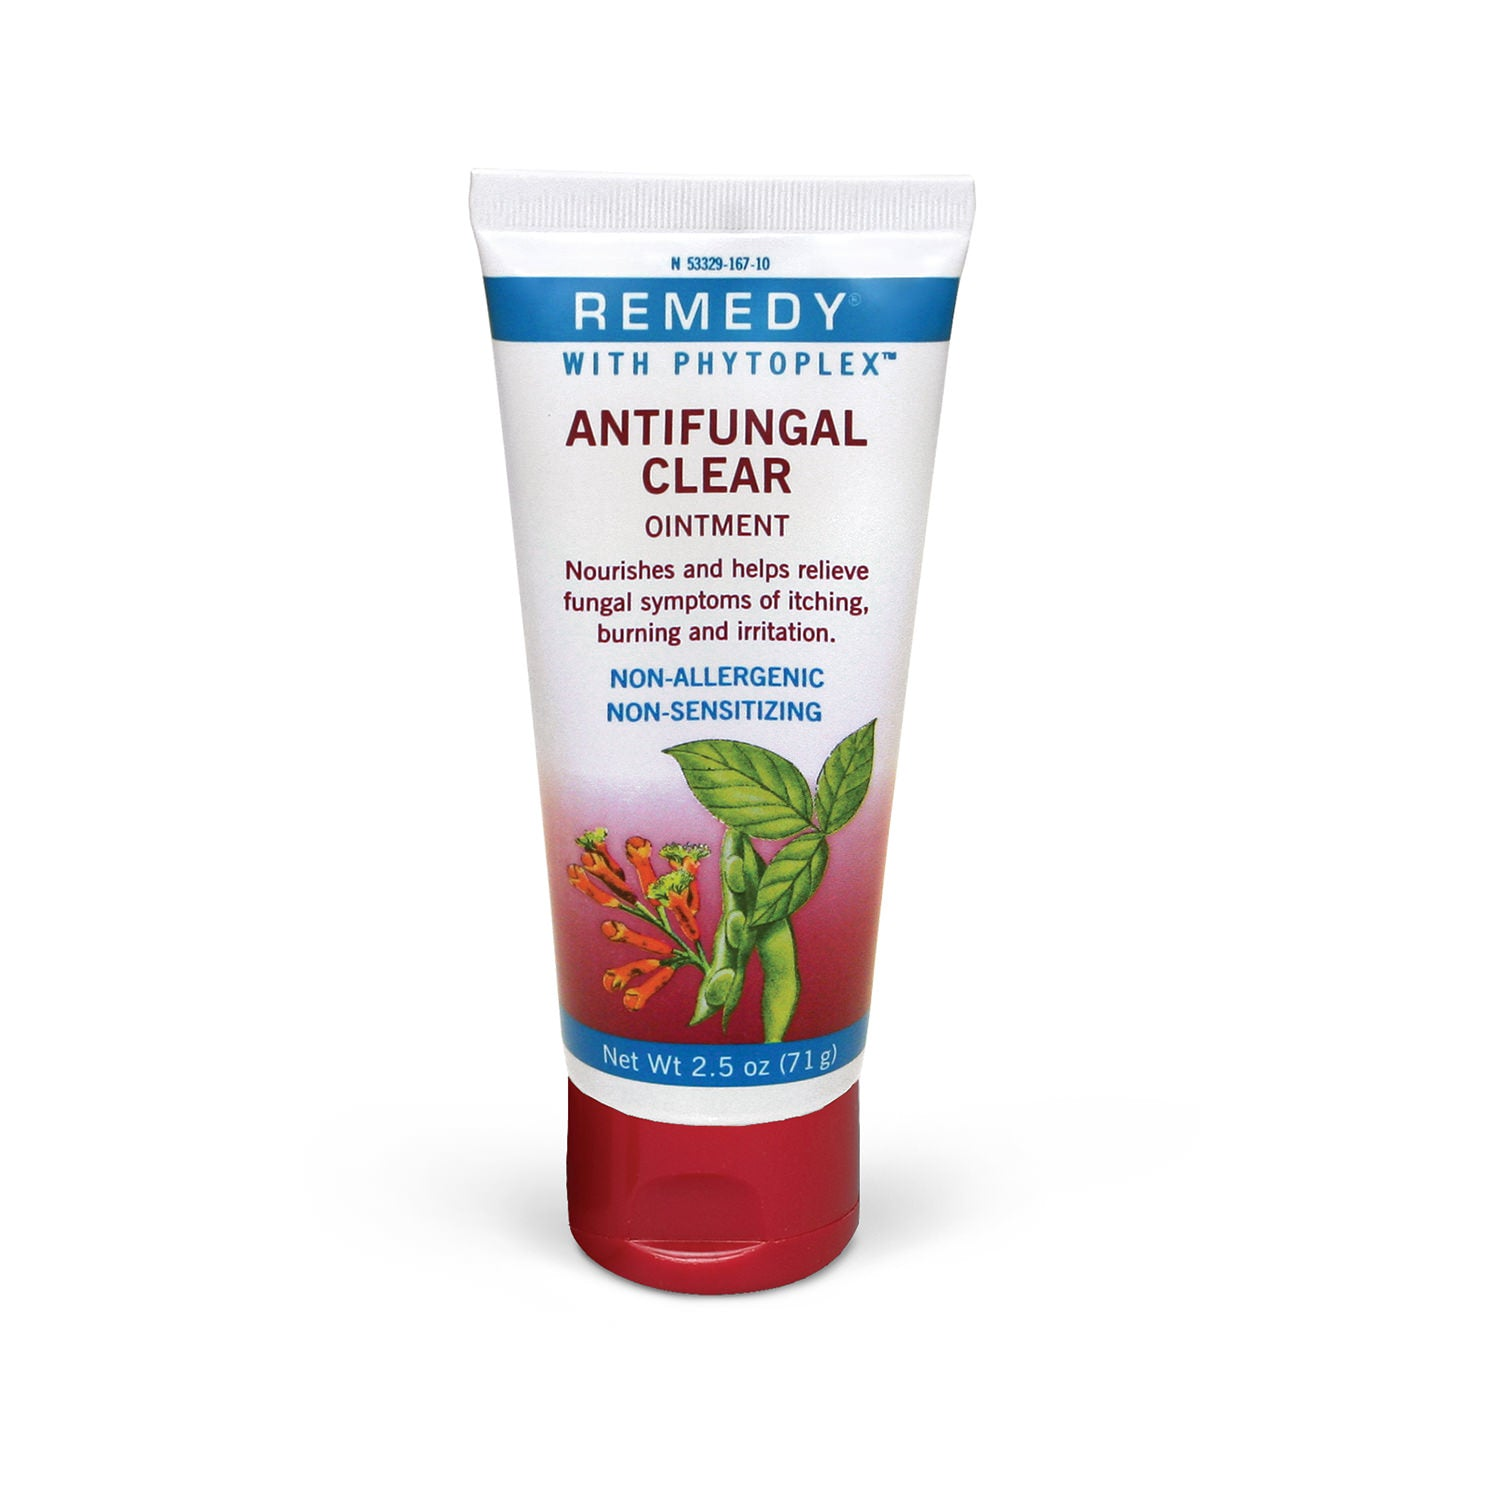 Remedy Phytoplex Antifungal Ointment - 2.5 oz.